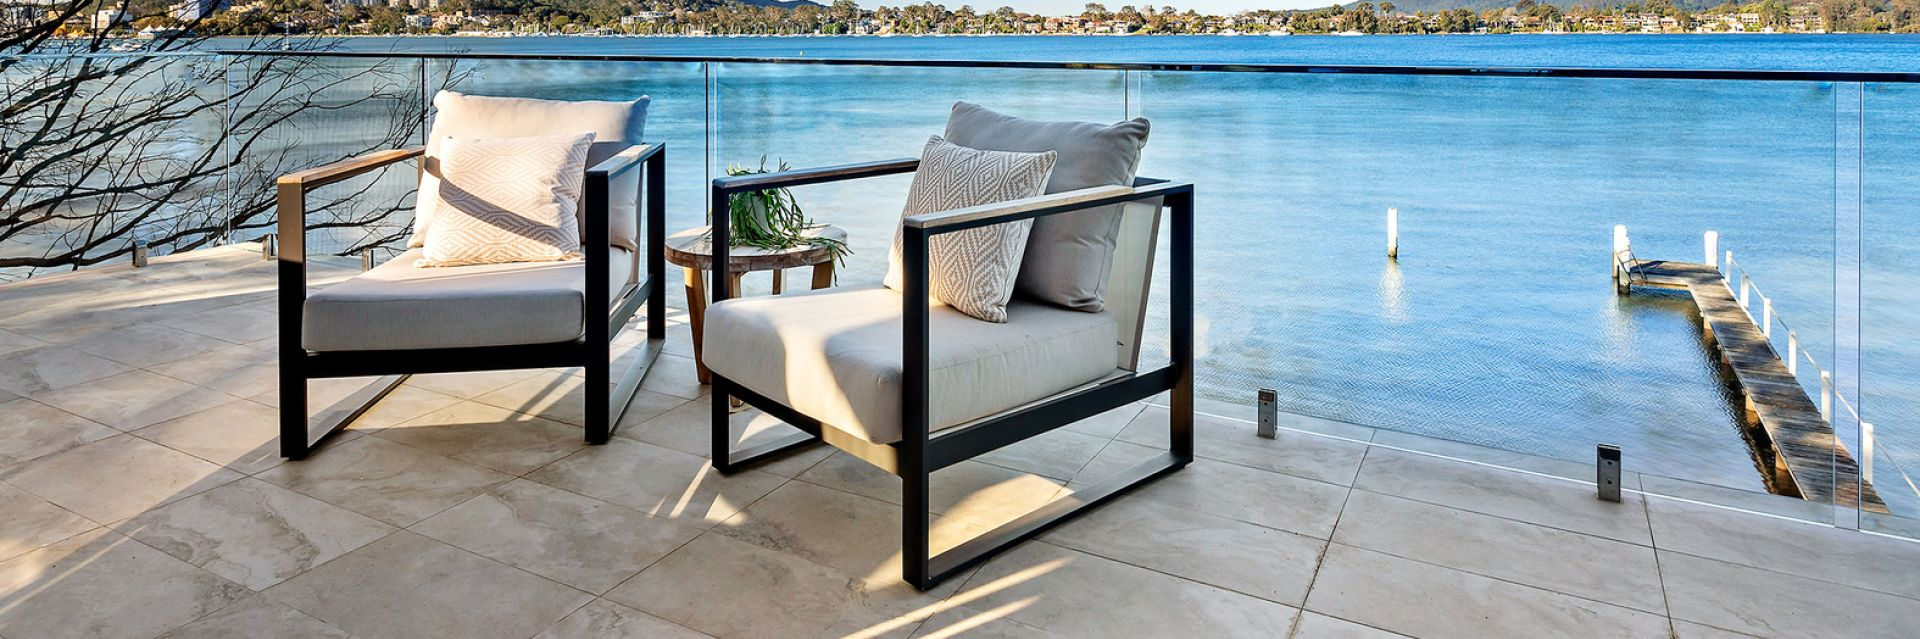 Belle Property Escapes property balcony featuring two sitting chairs overlooking the water at Point Clare